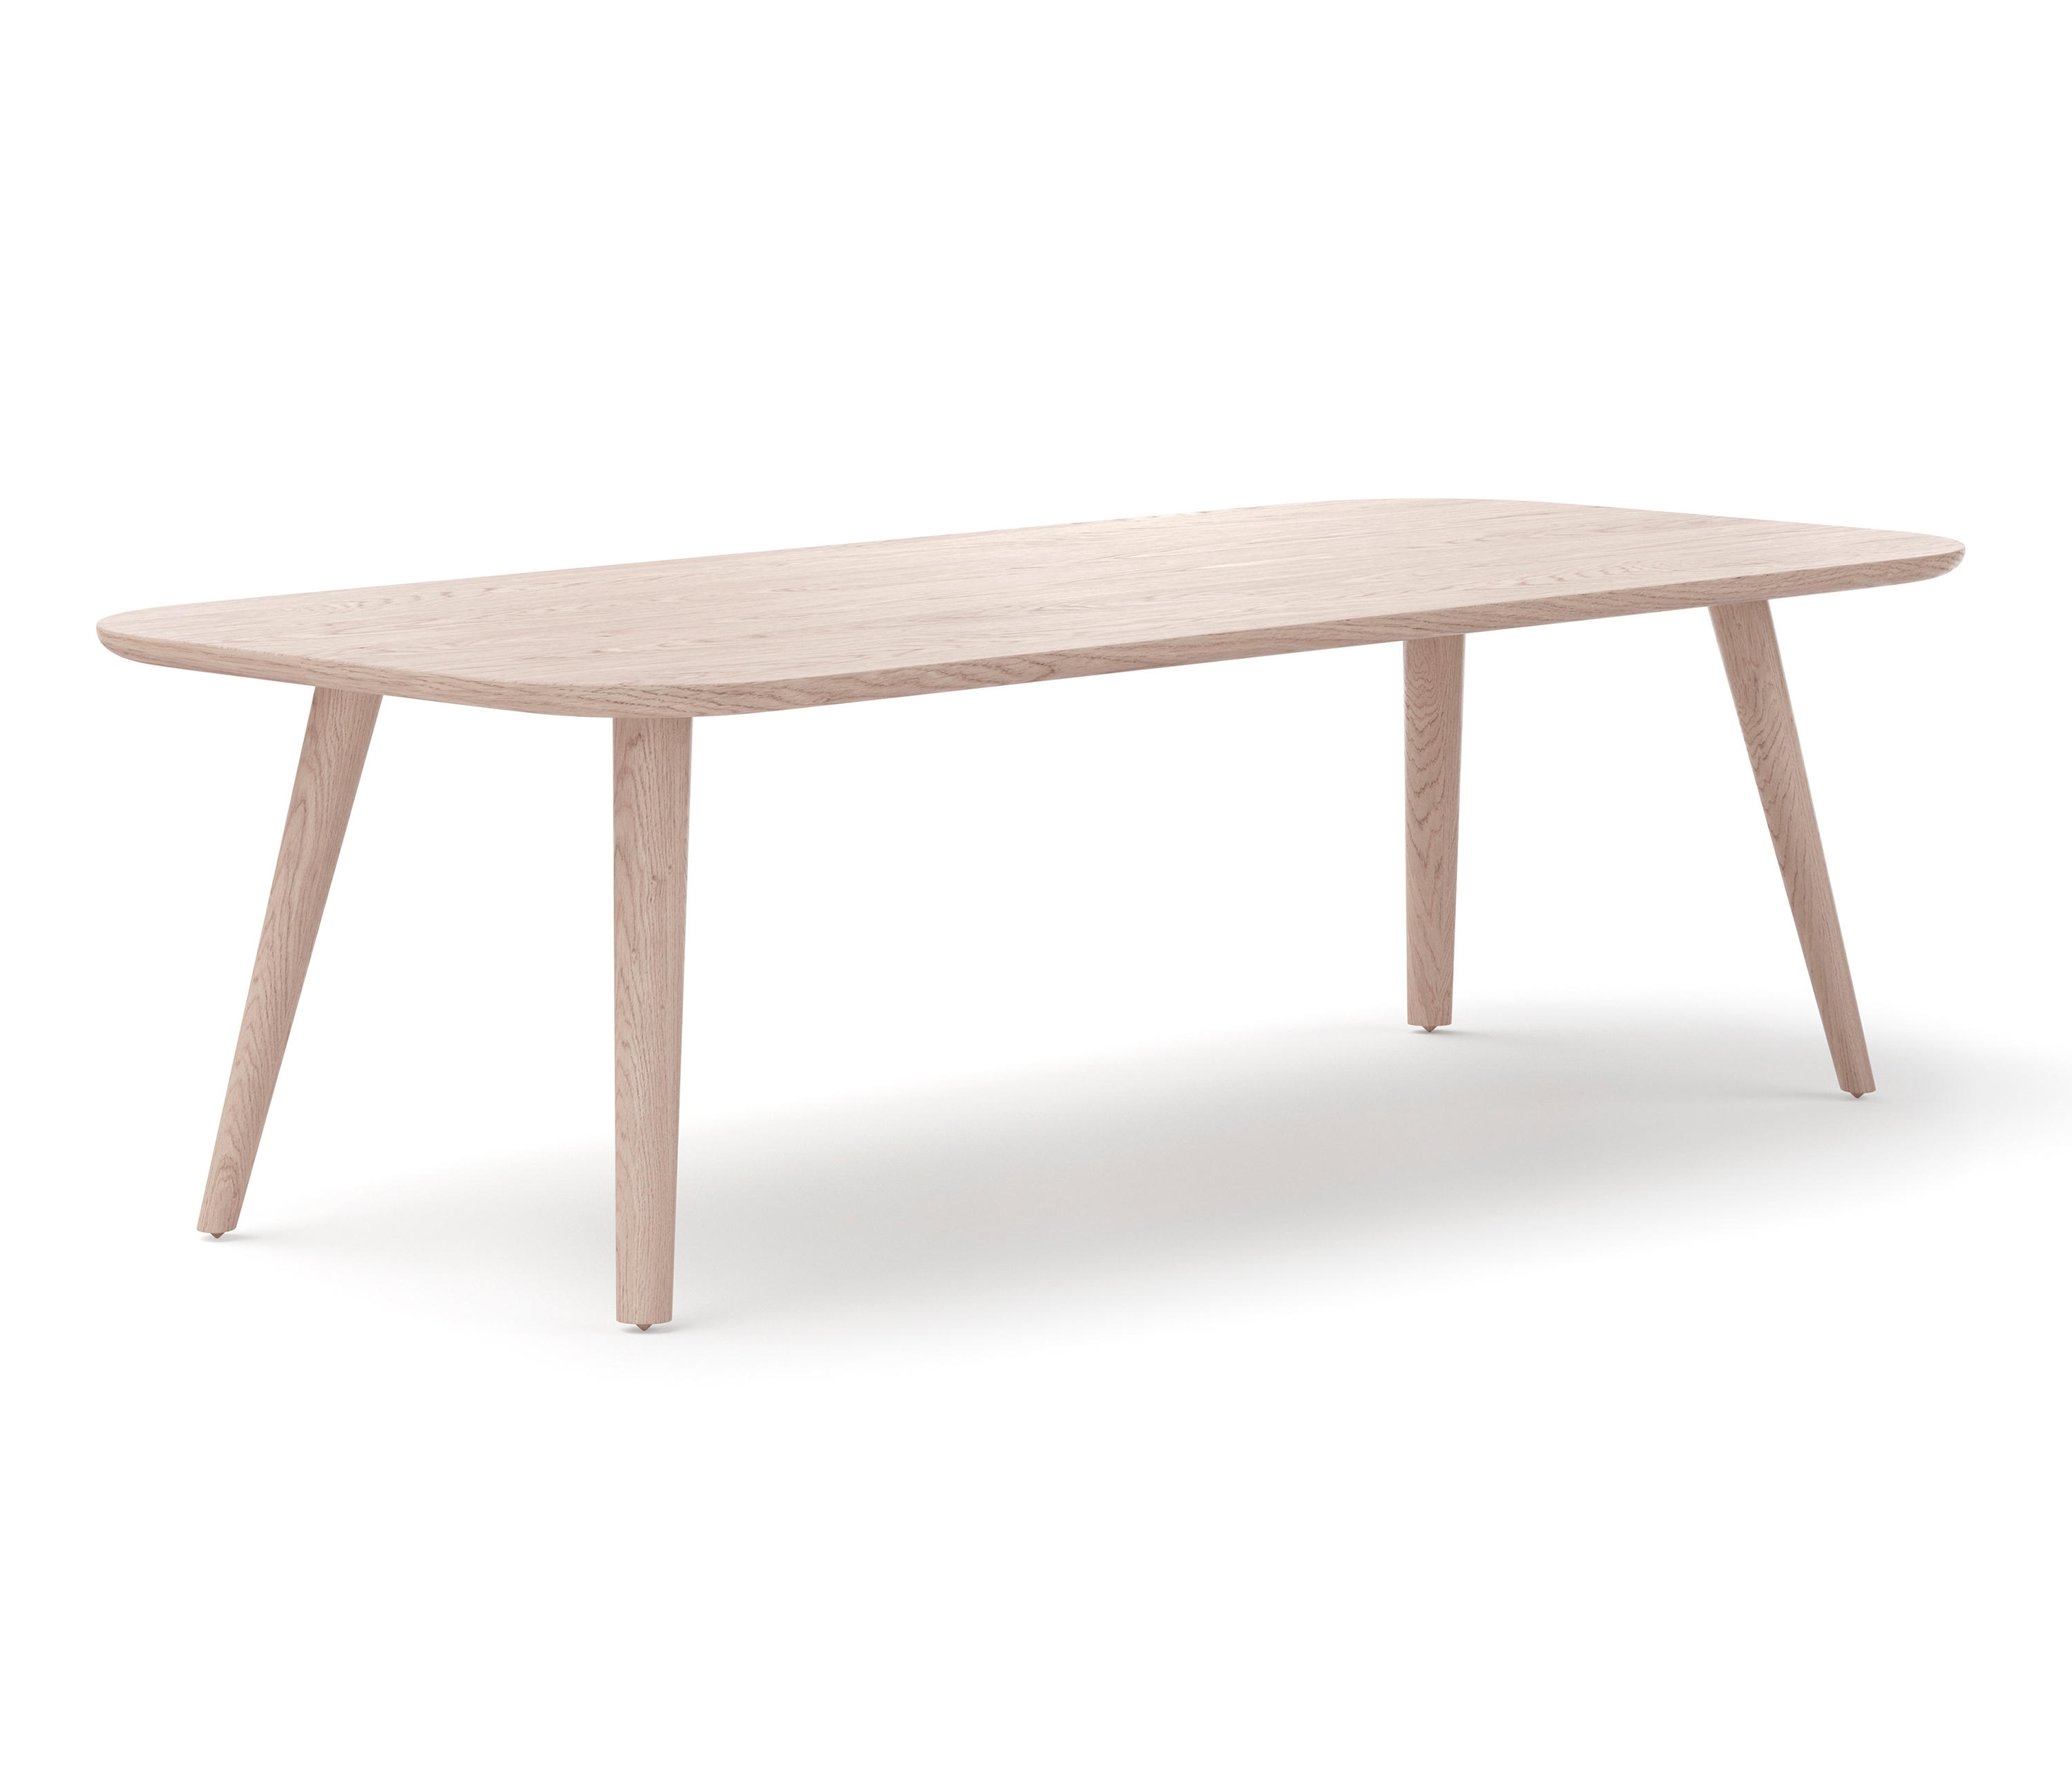 Geometry 71036 - Coffee Tables From Keilhauer | Architonic in Element Ivory Rectangular Coffee Tables (Image 9 of 30)